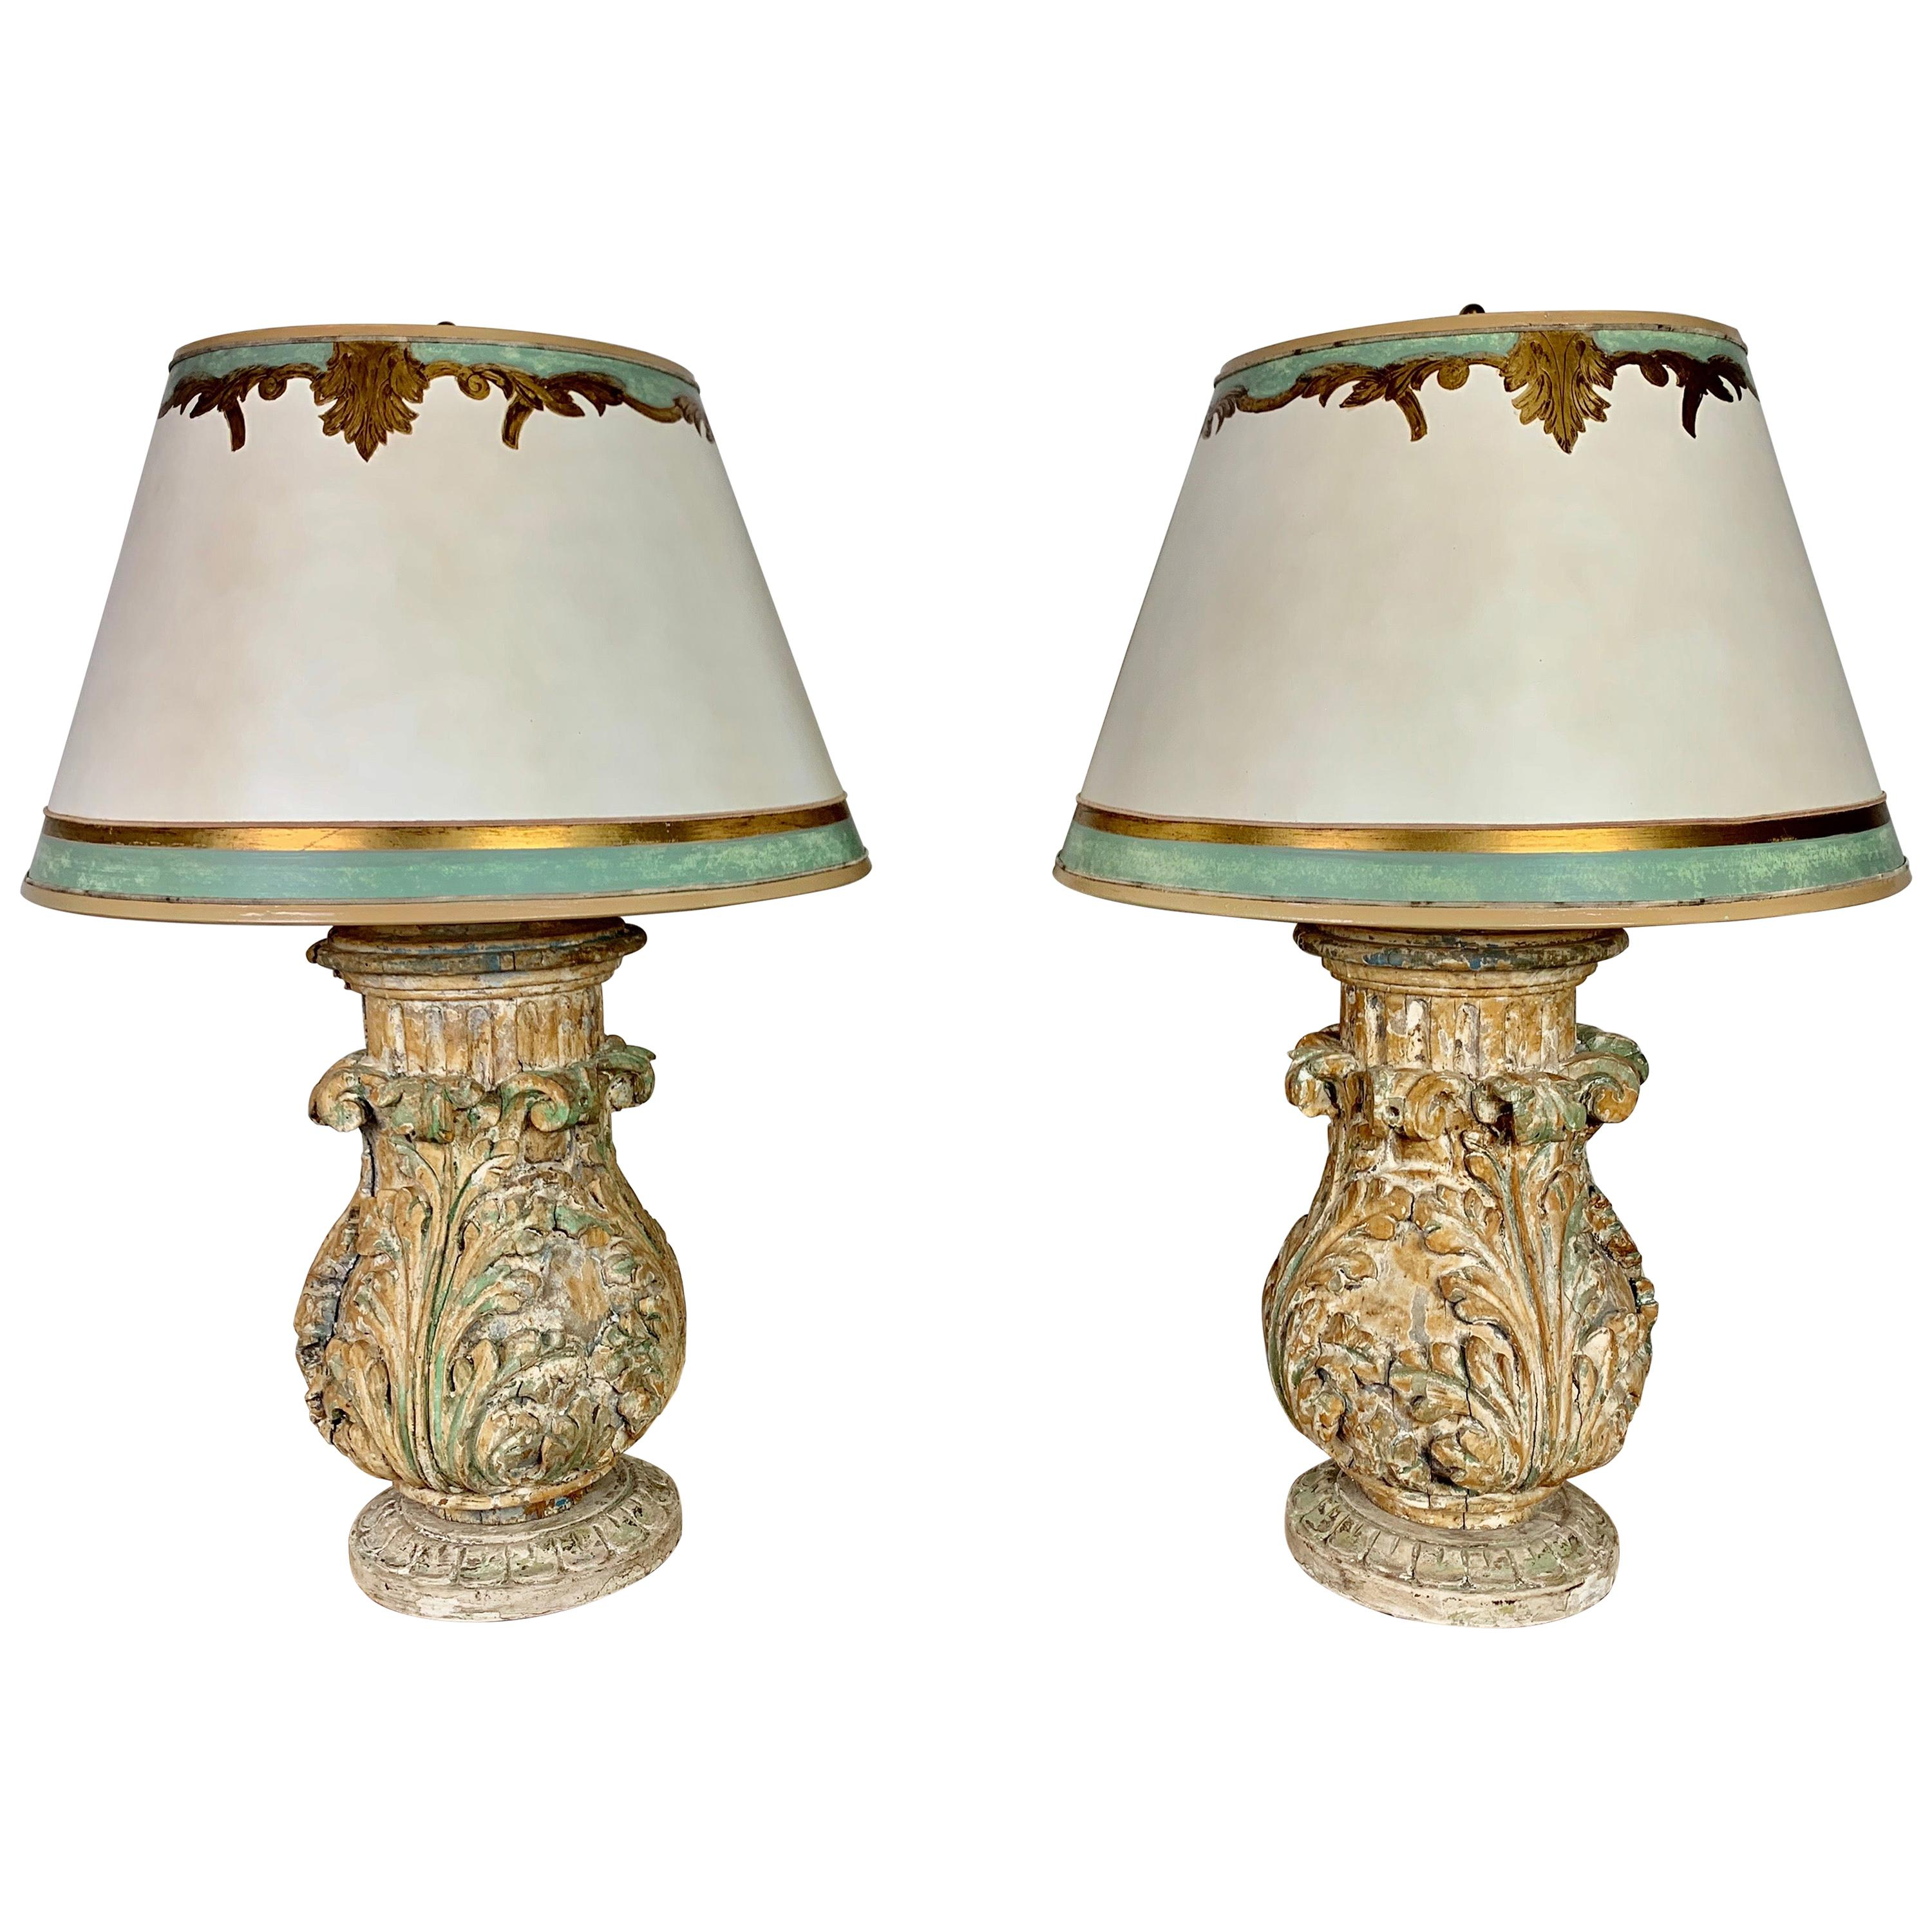 Pair of Italian Acanthus Leaf Lamps with Parchment Shades